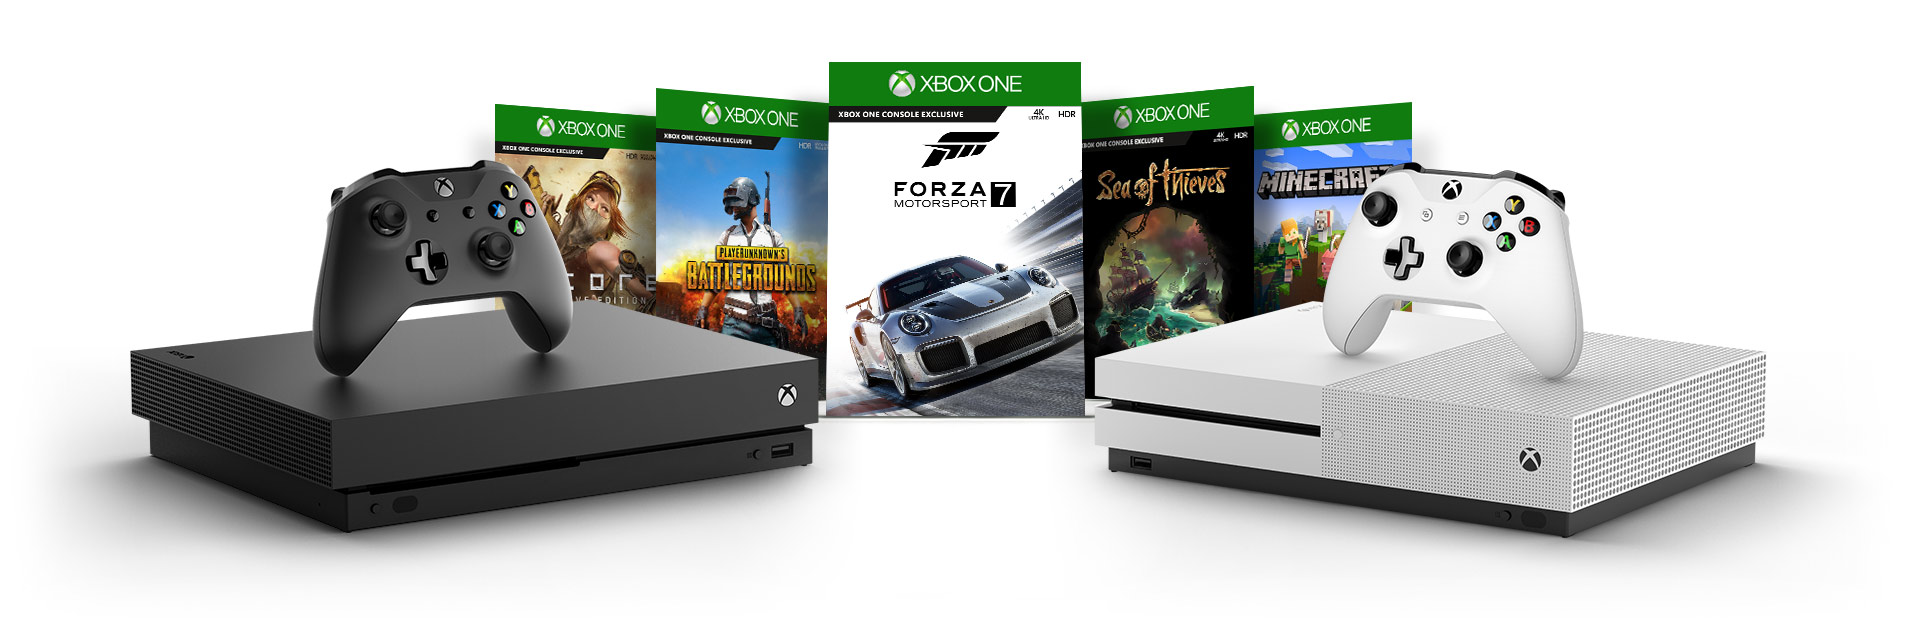 Zdjęcia pudełek z gier State of Decay 2, Player Unknown's Battlegrounds, Forza 7, Sea of Thieves i Cuphead za konsolami Xbox One X i Xbox One S